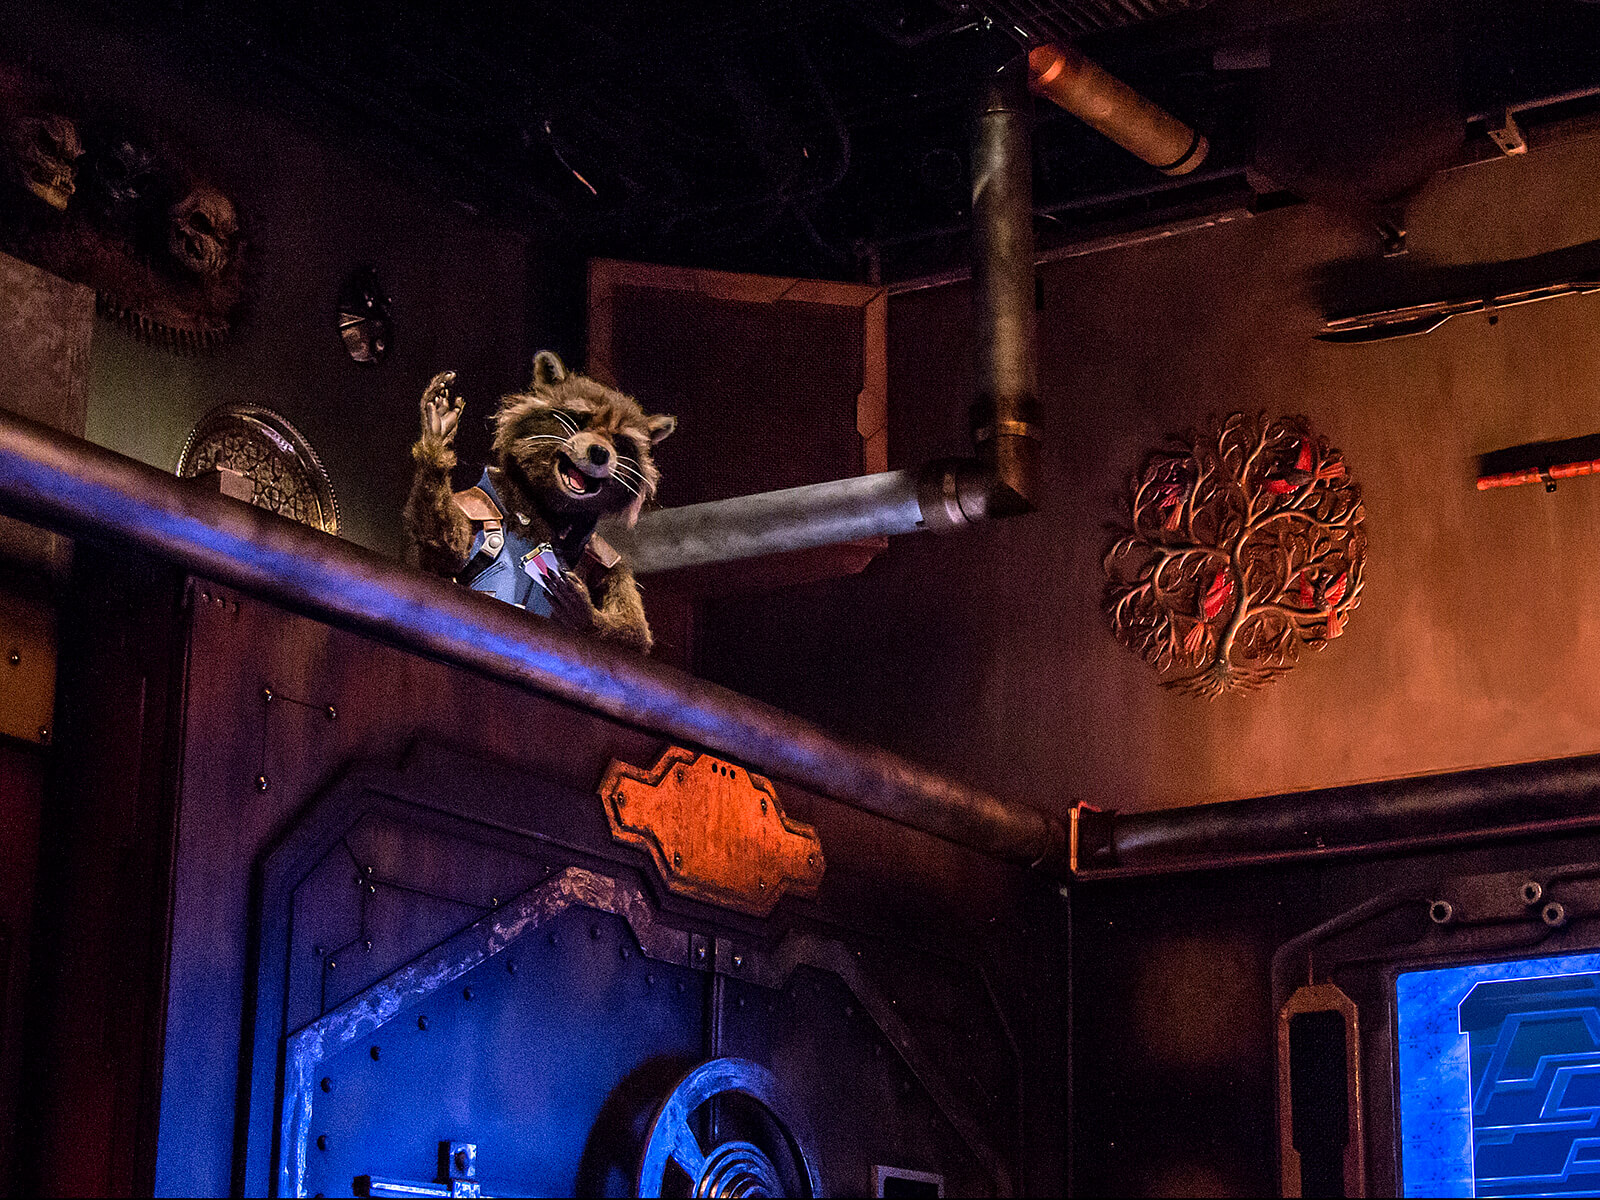 Audio-animatronic Rocket Raccoon welcomes riders to the Guardians of the Galaxy: Mission Breakout at Disney's California Adventure theme park